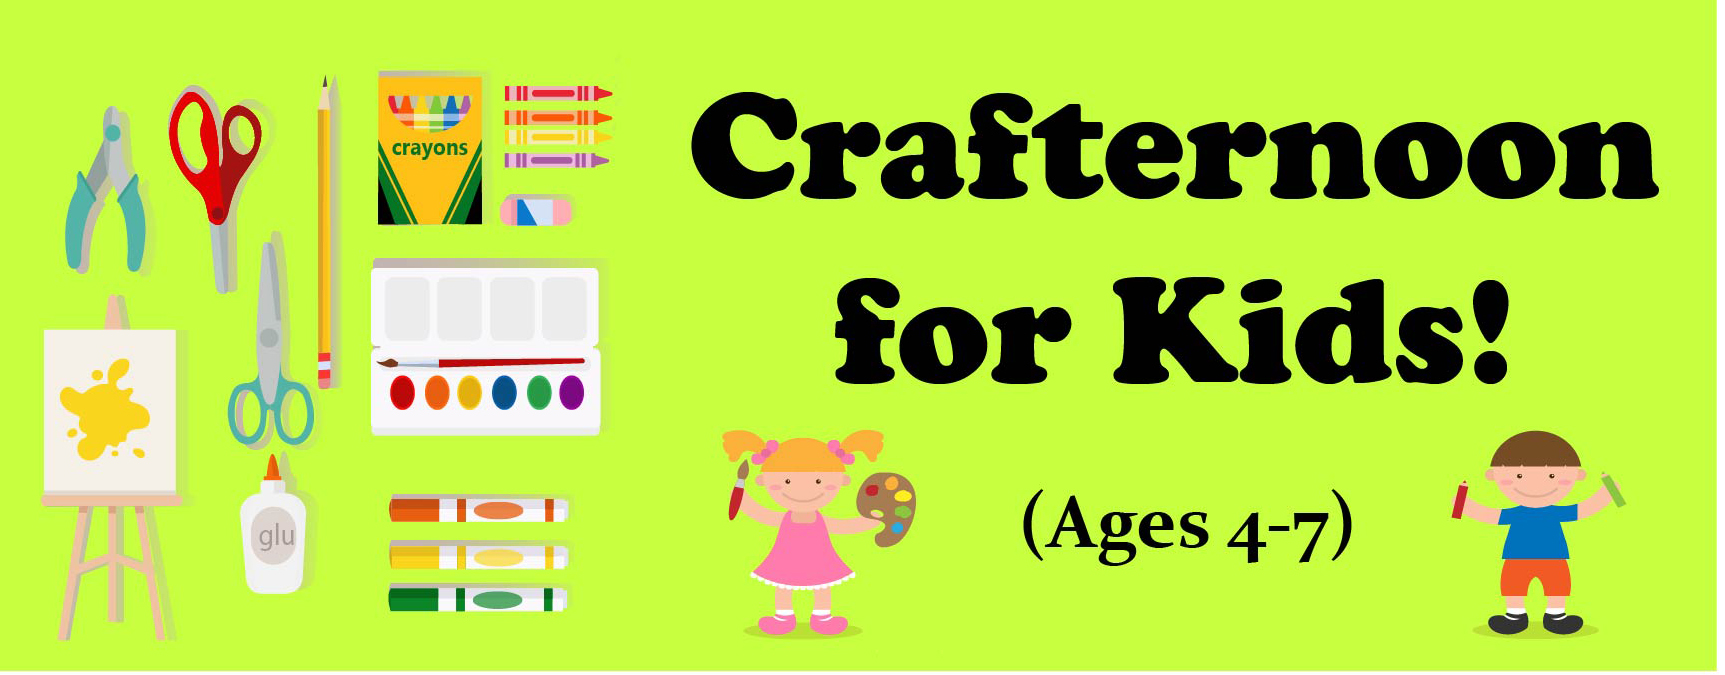 Crafternoon for Kids